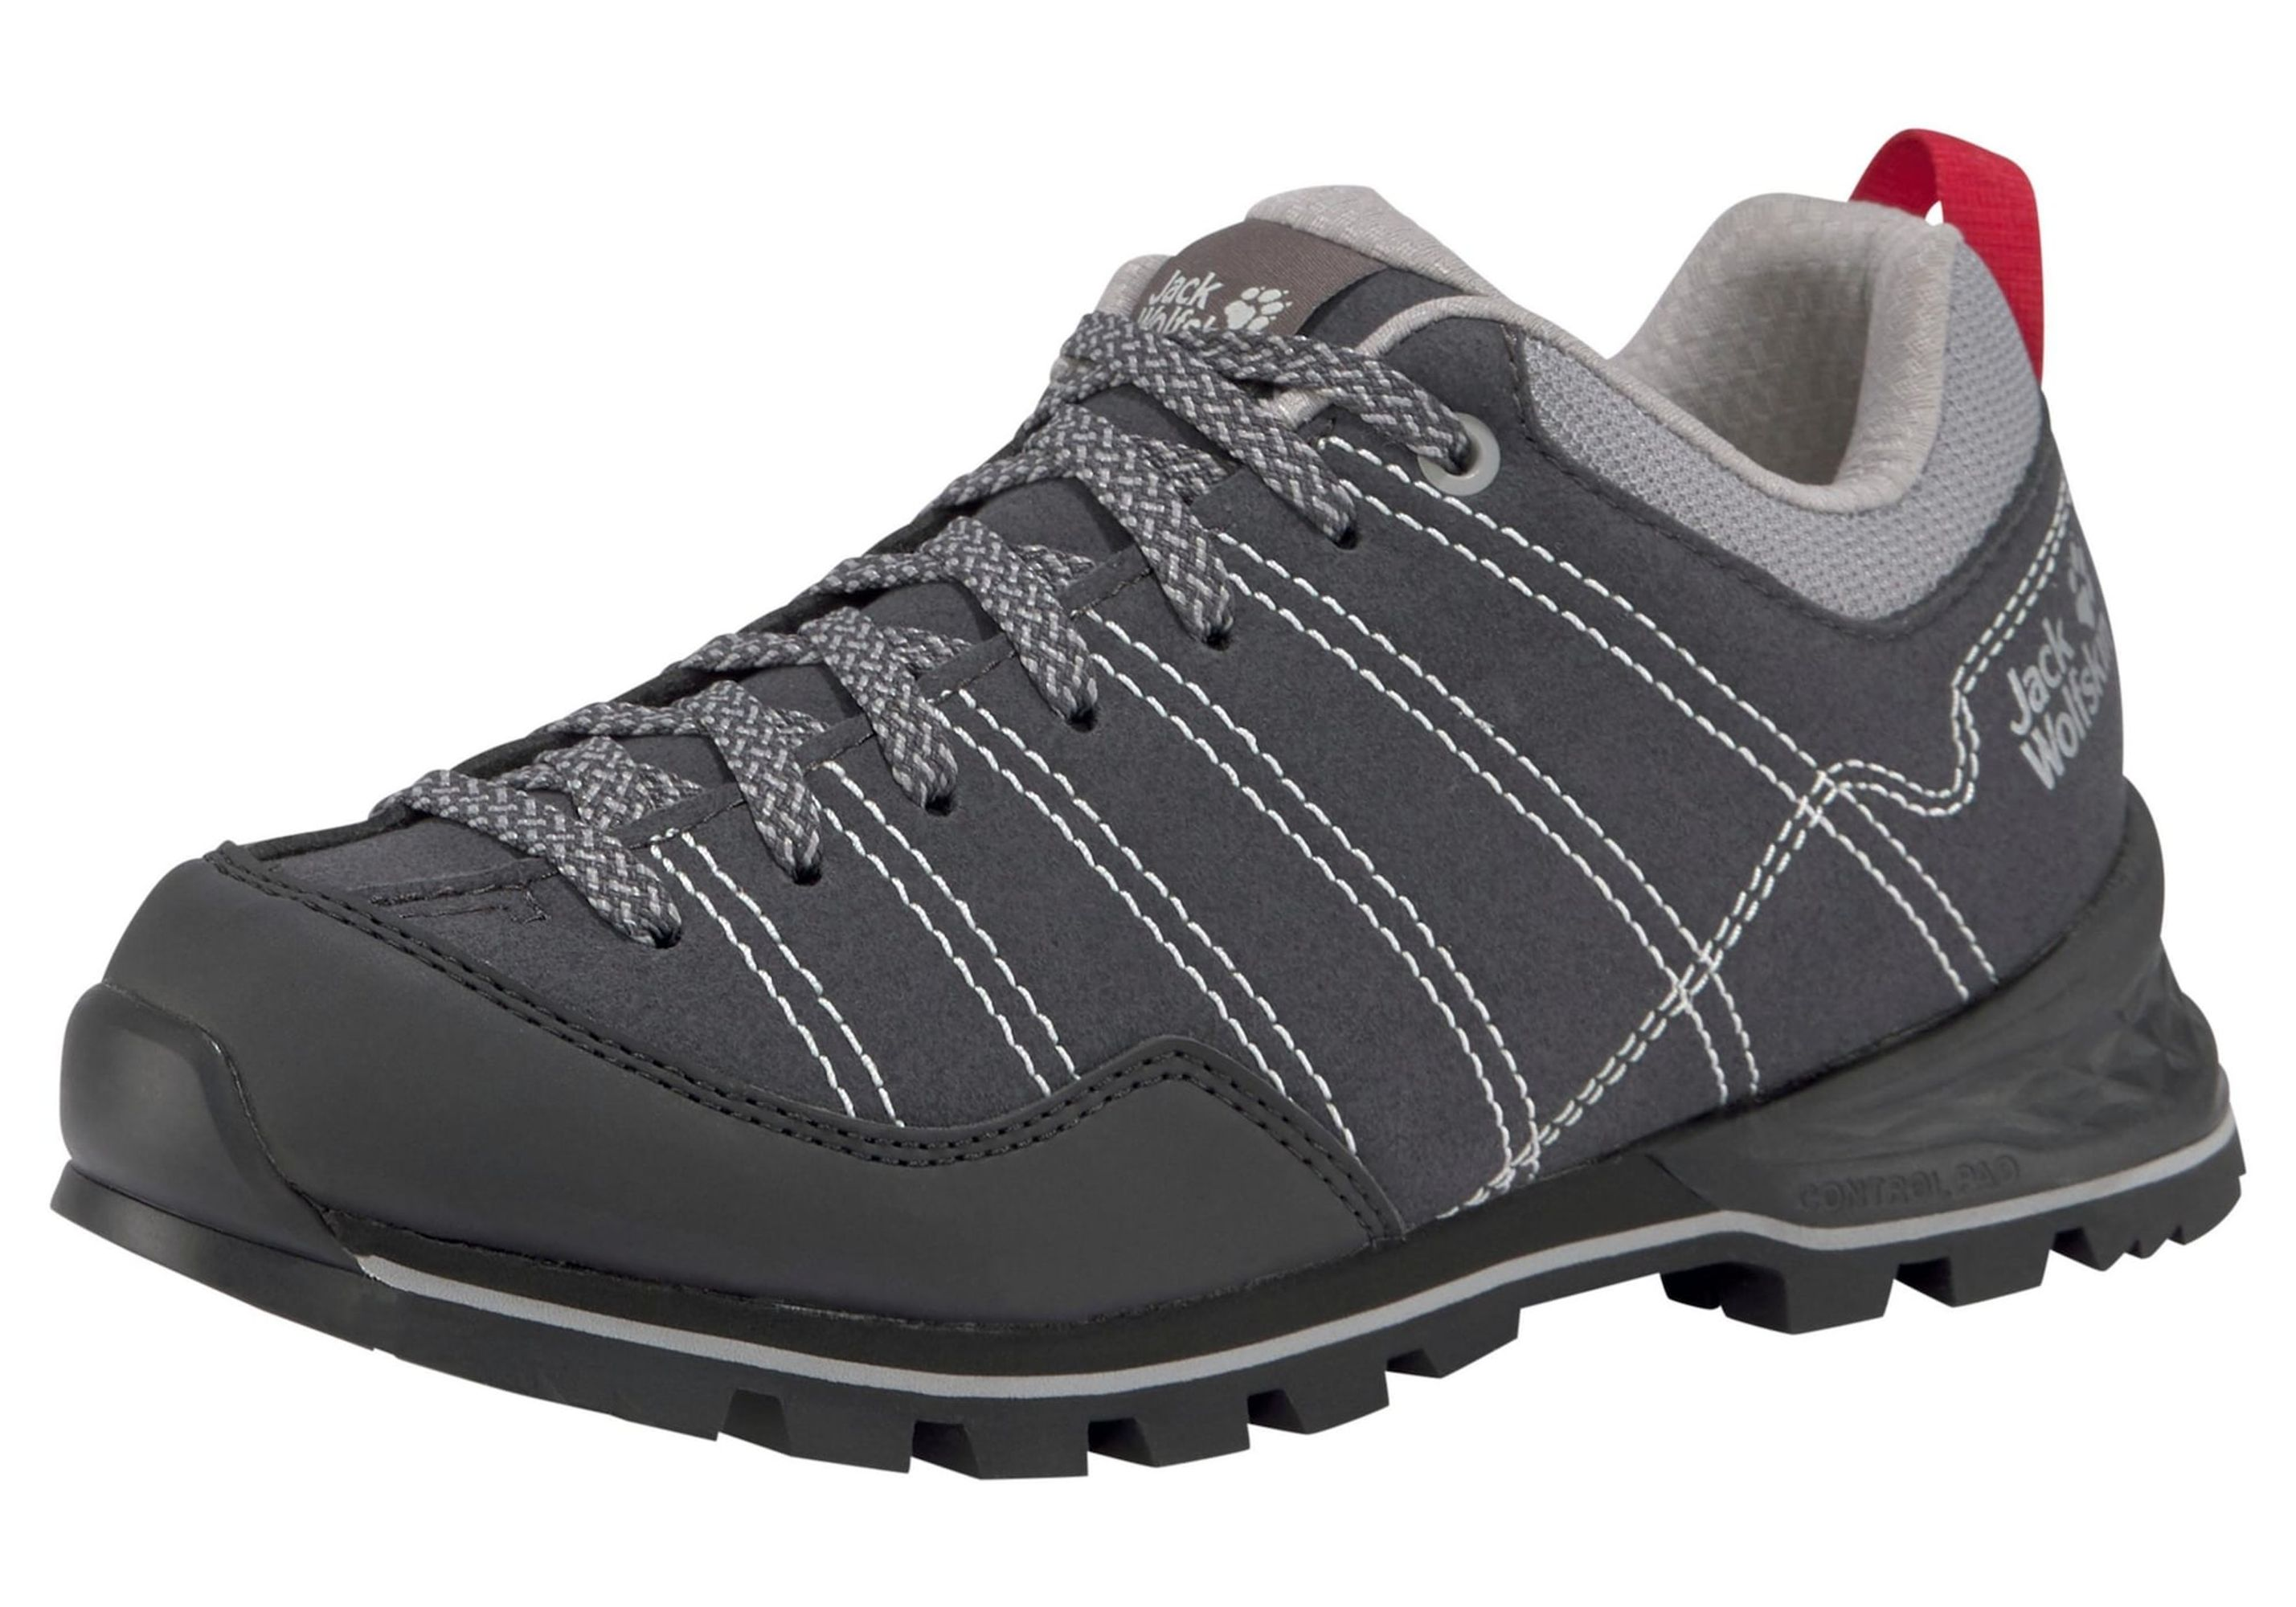 Outdoorschuh ´Scrambler Low W´